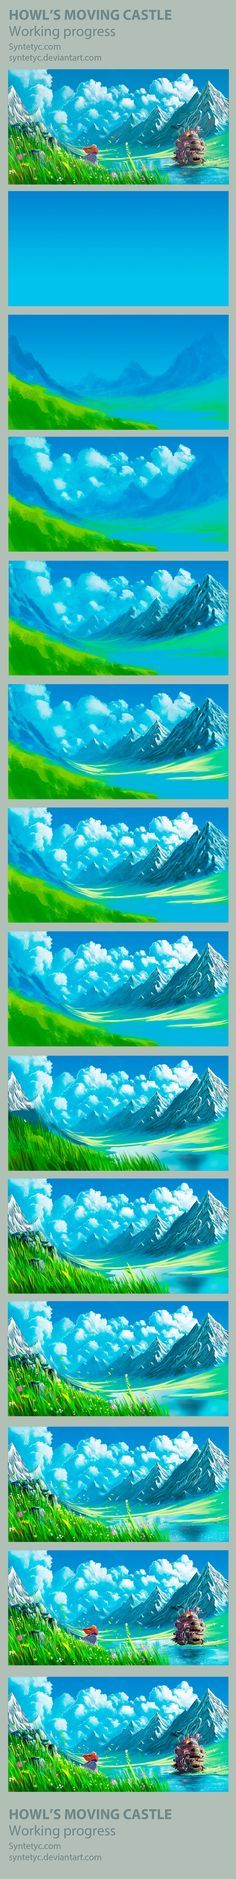 Howls Moving Castle - Process by Syntetyc.deviantart.com on @deviantART